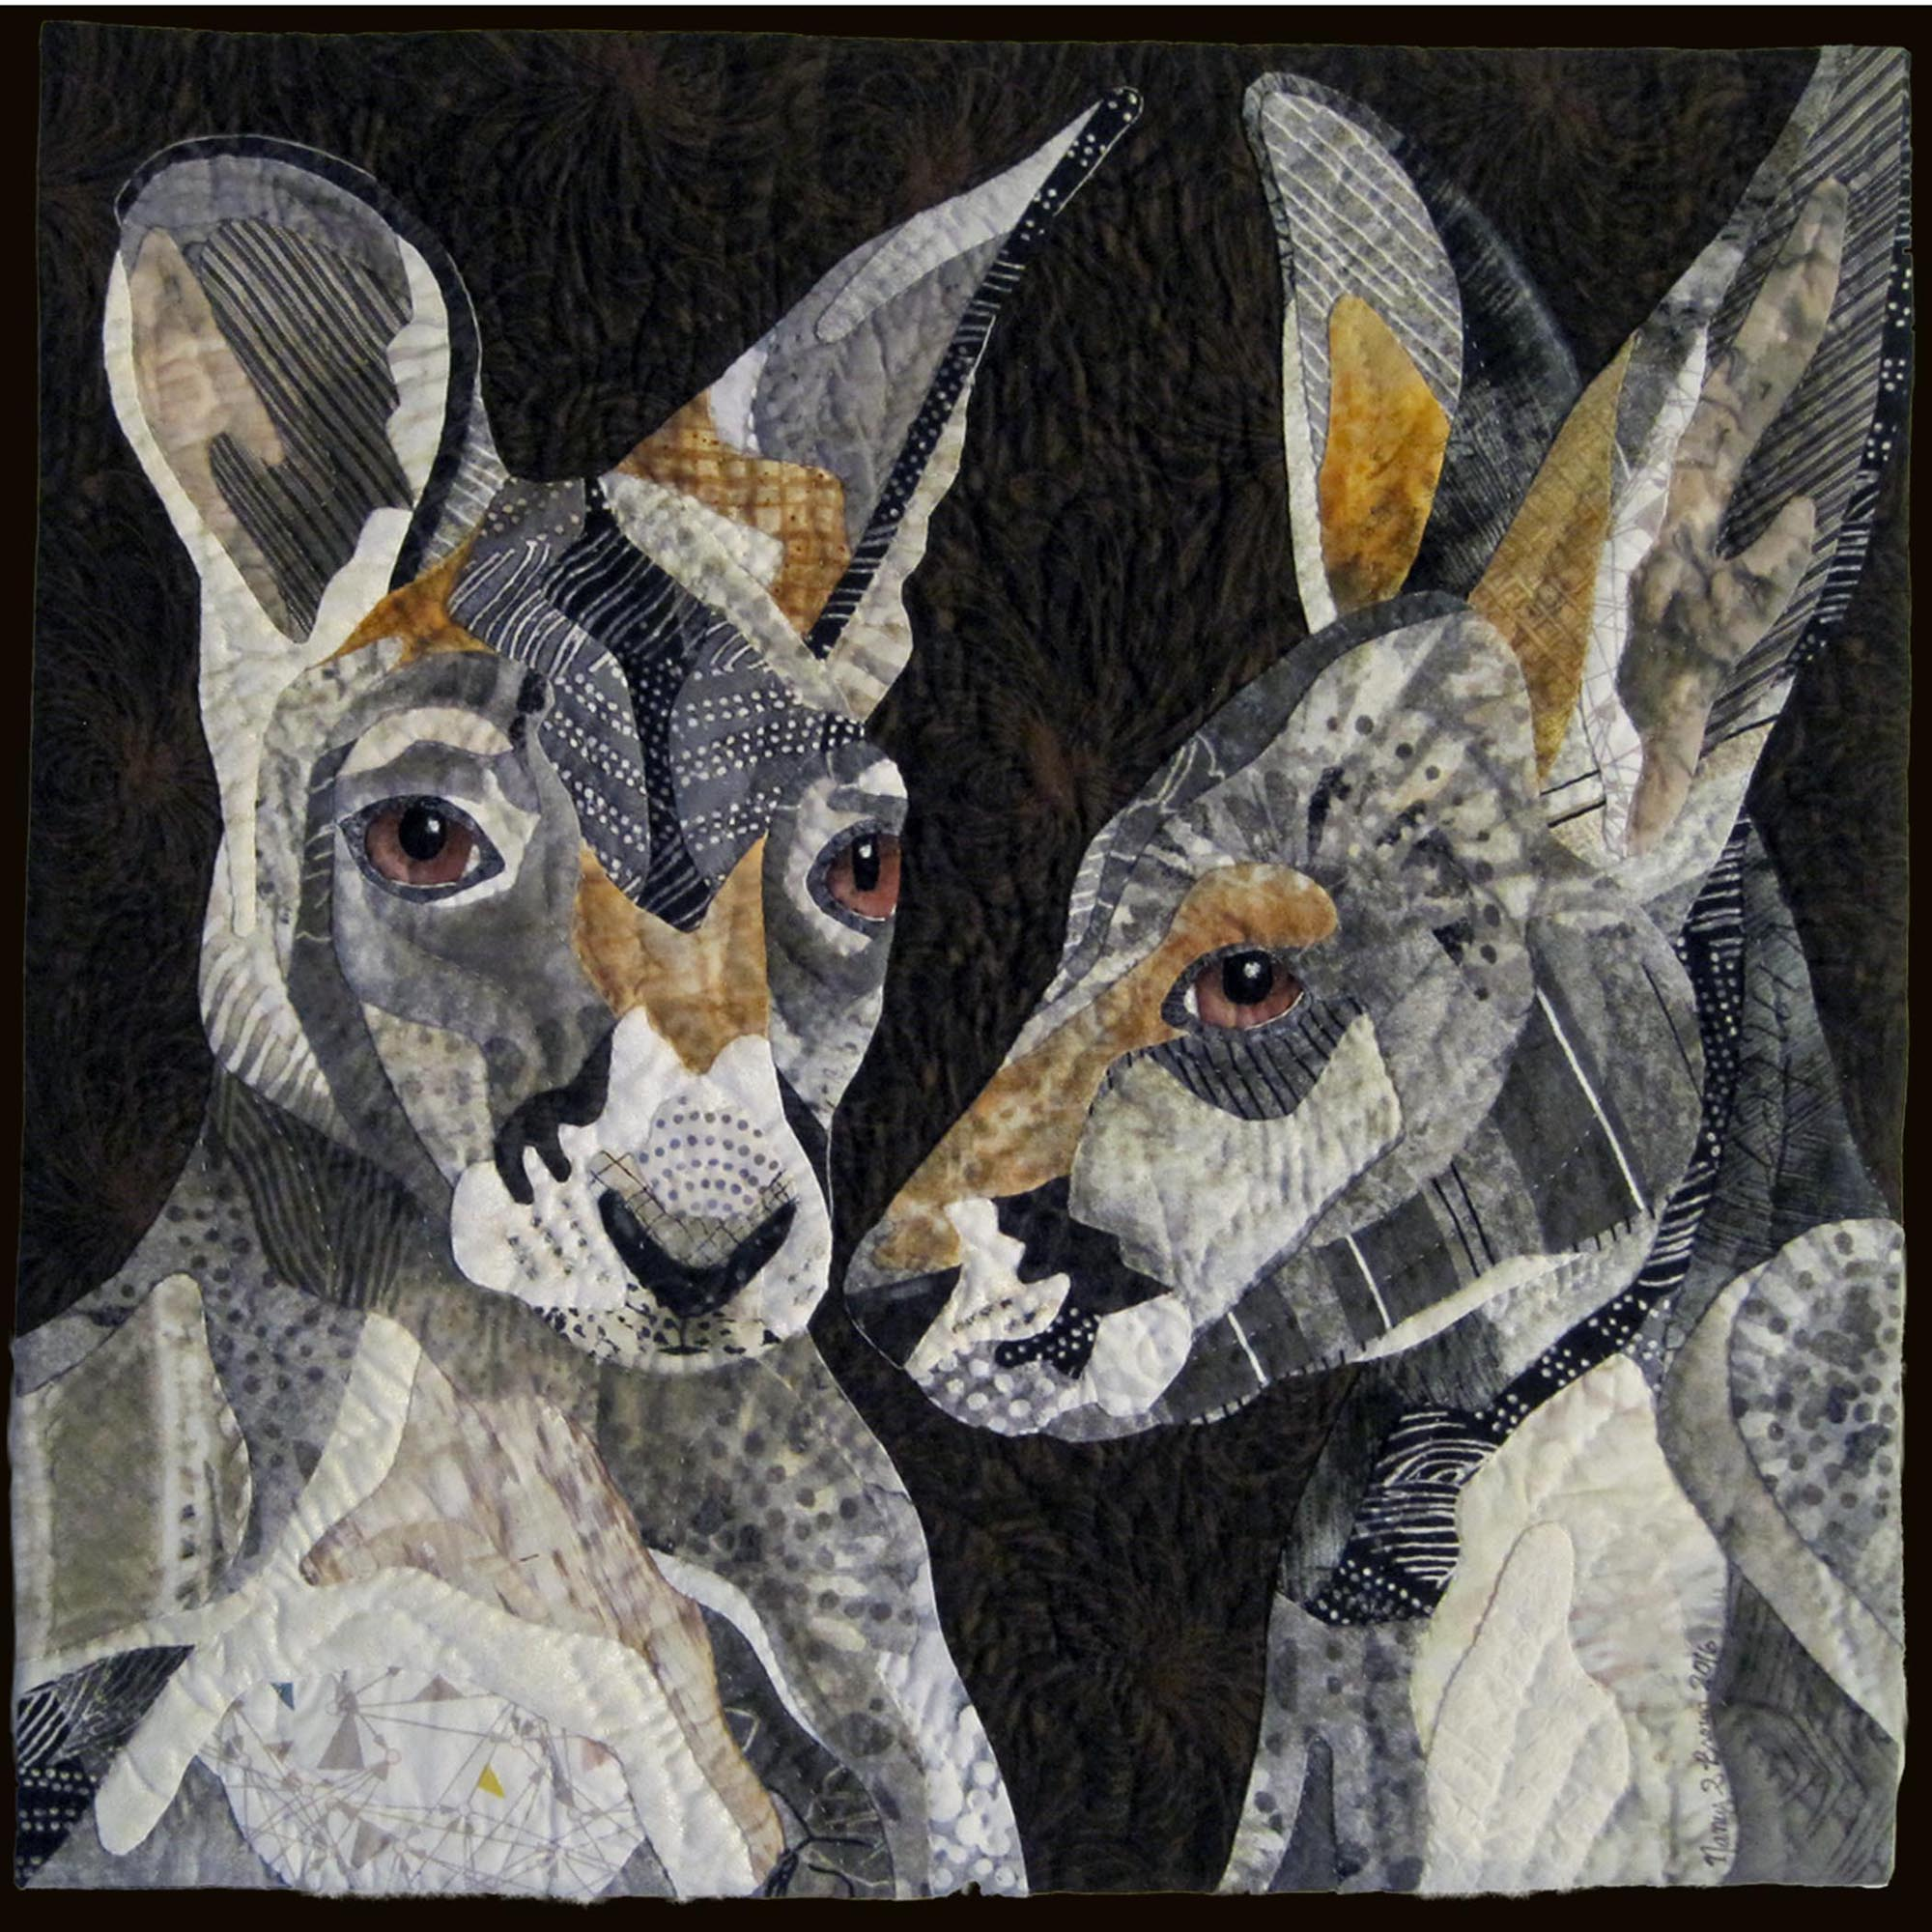 FIRST PLACE, <em>Roo to Roo</em>, Nancy Brown, Oakland, CA